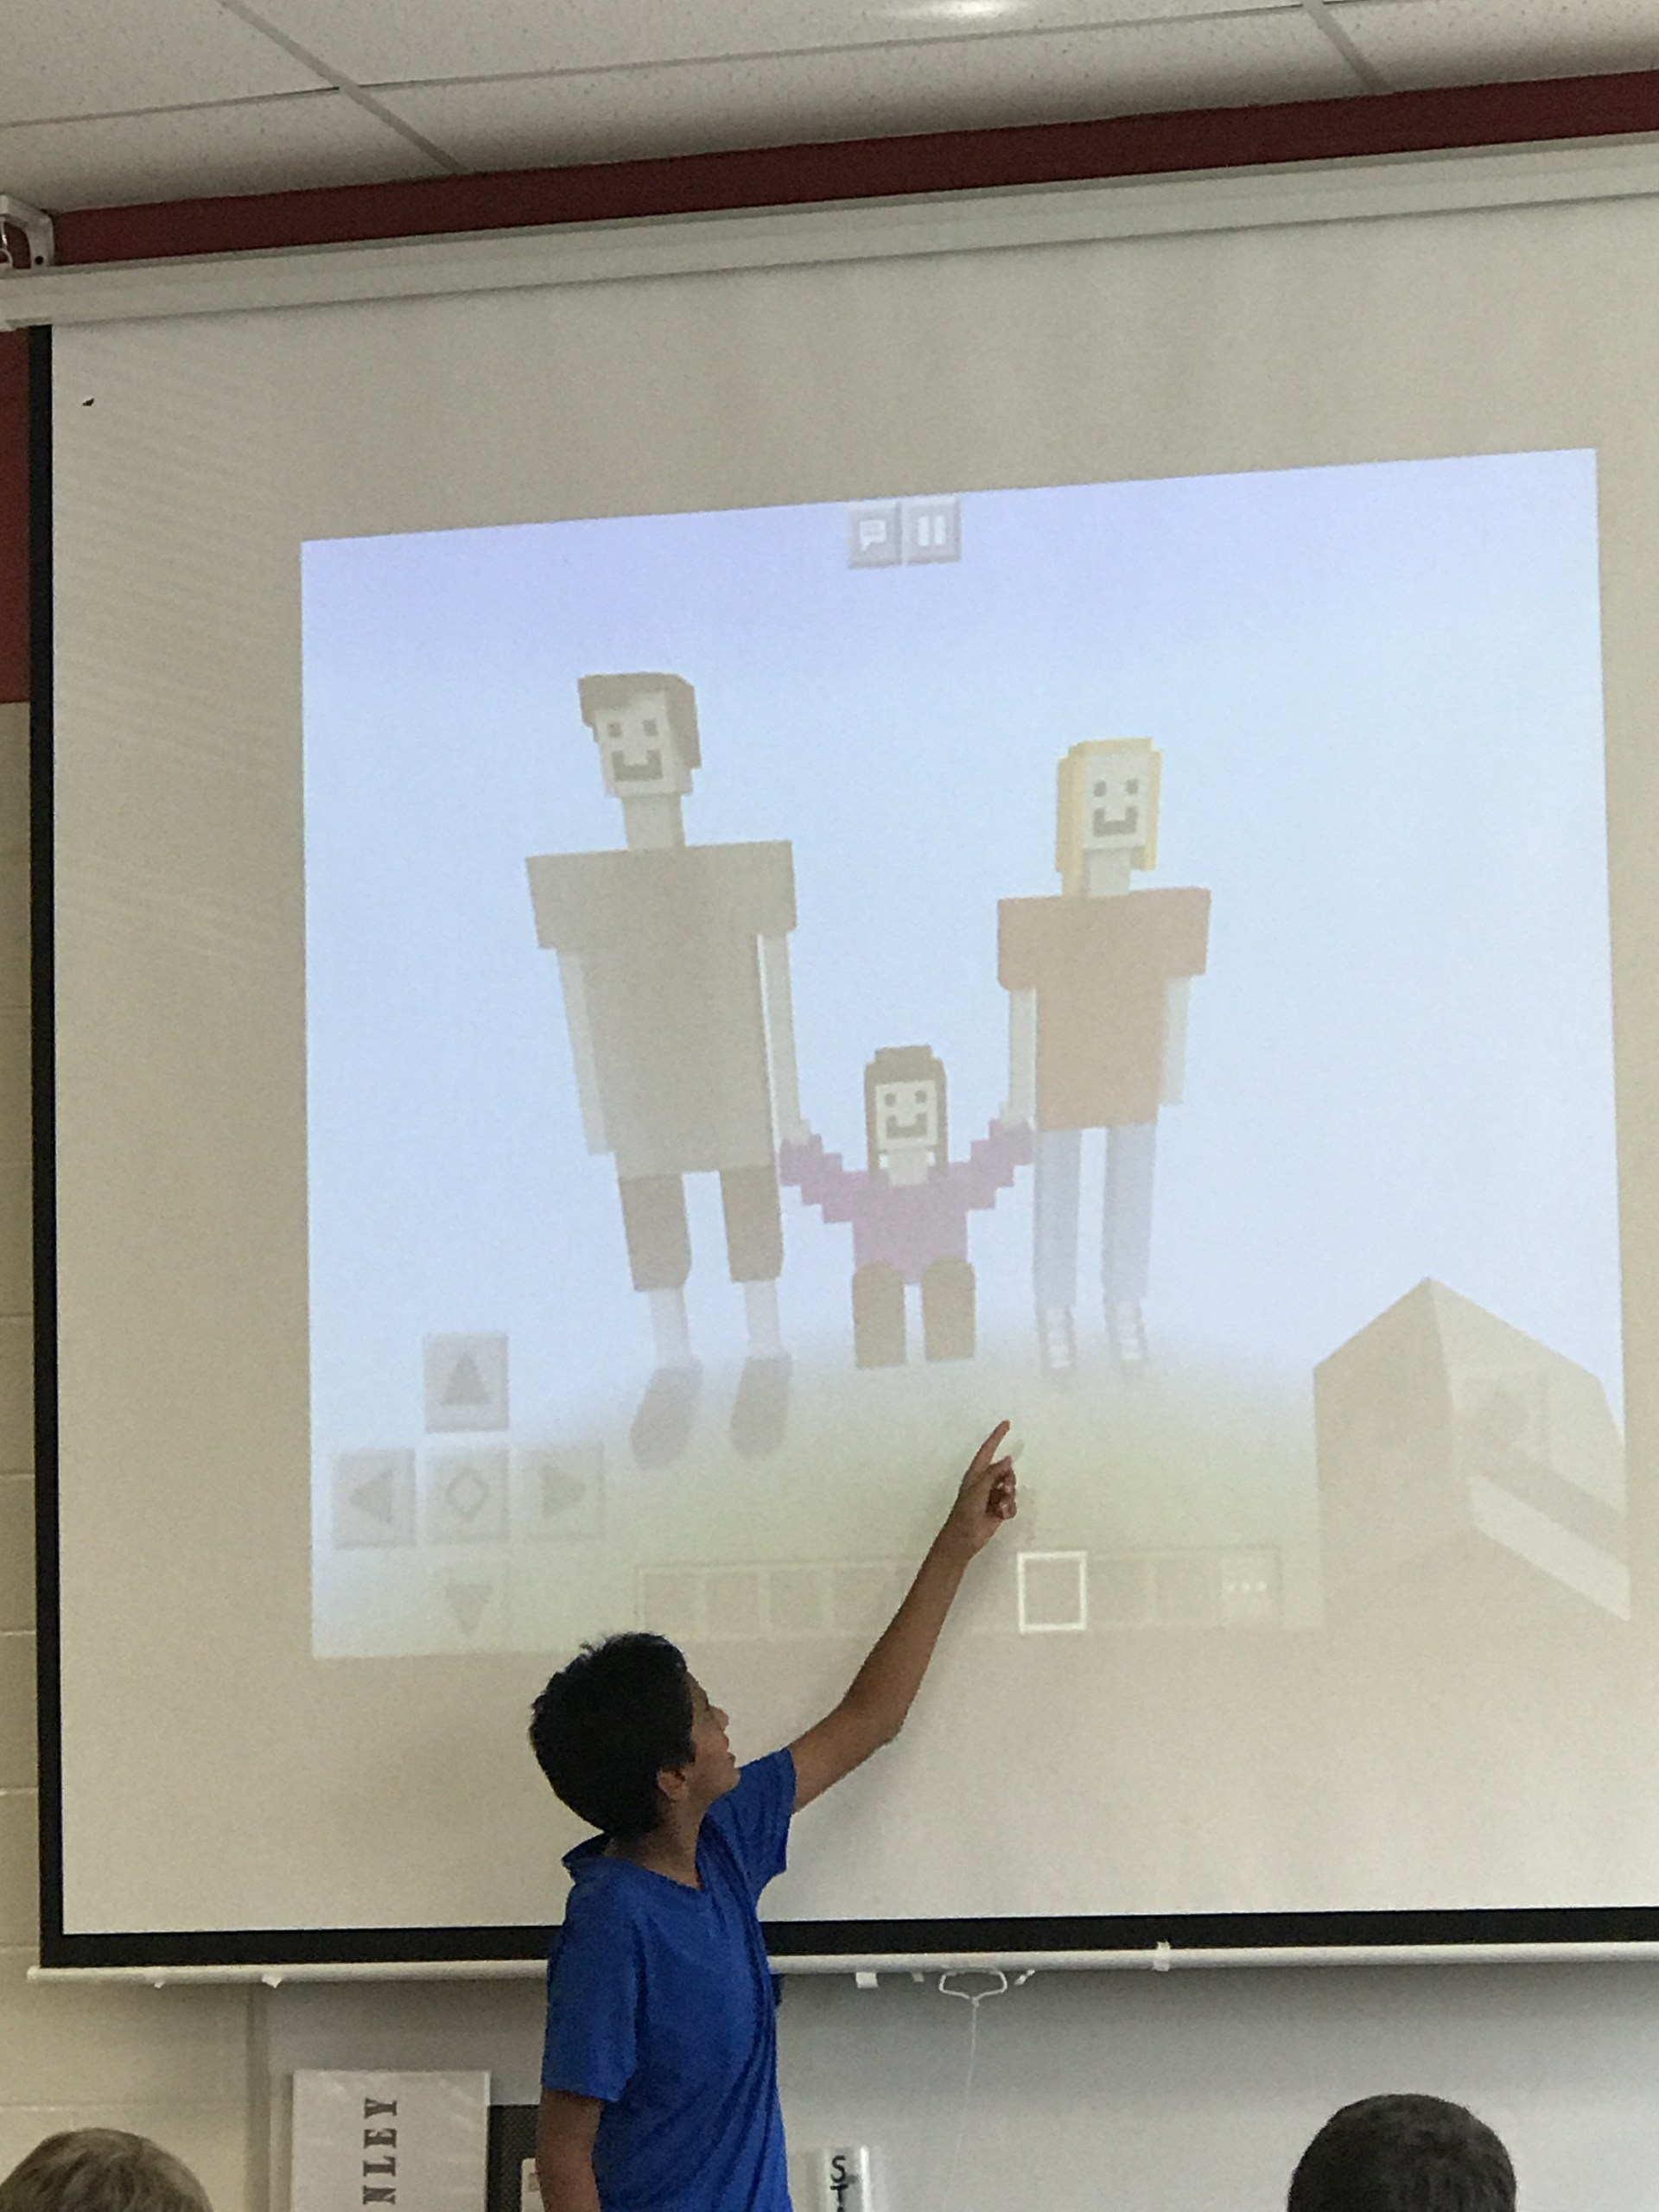 Nij did a great job creating Margot's family in Minecraft